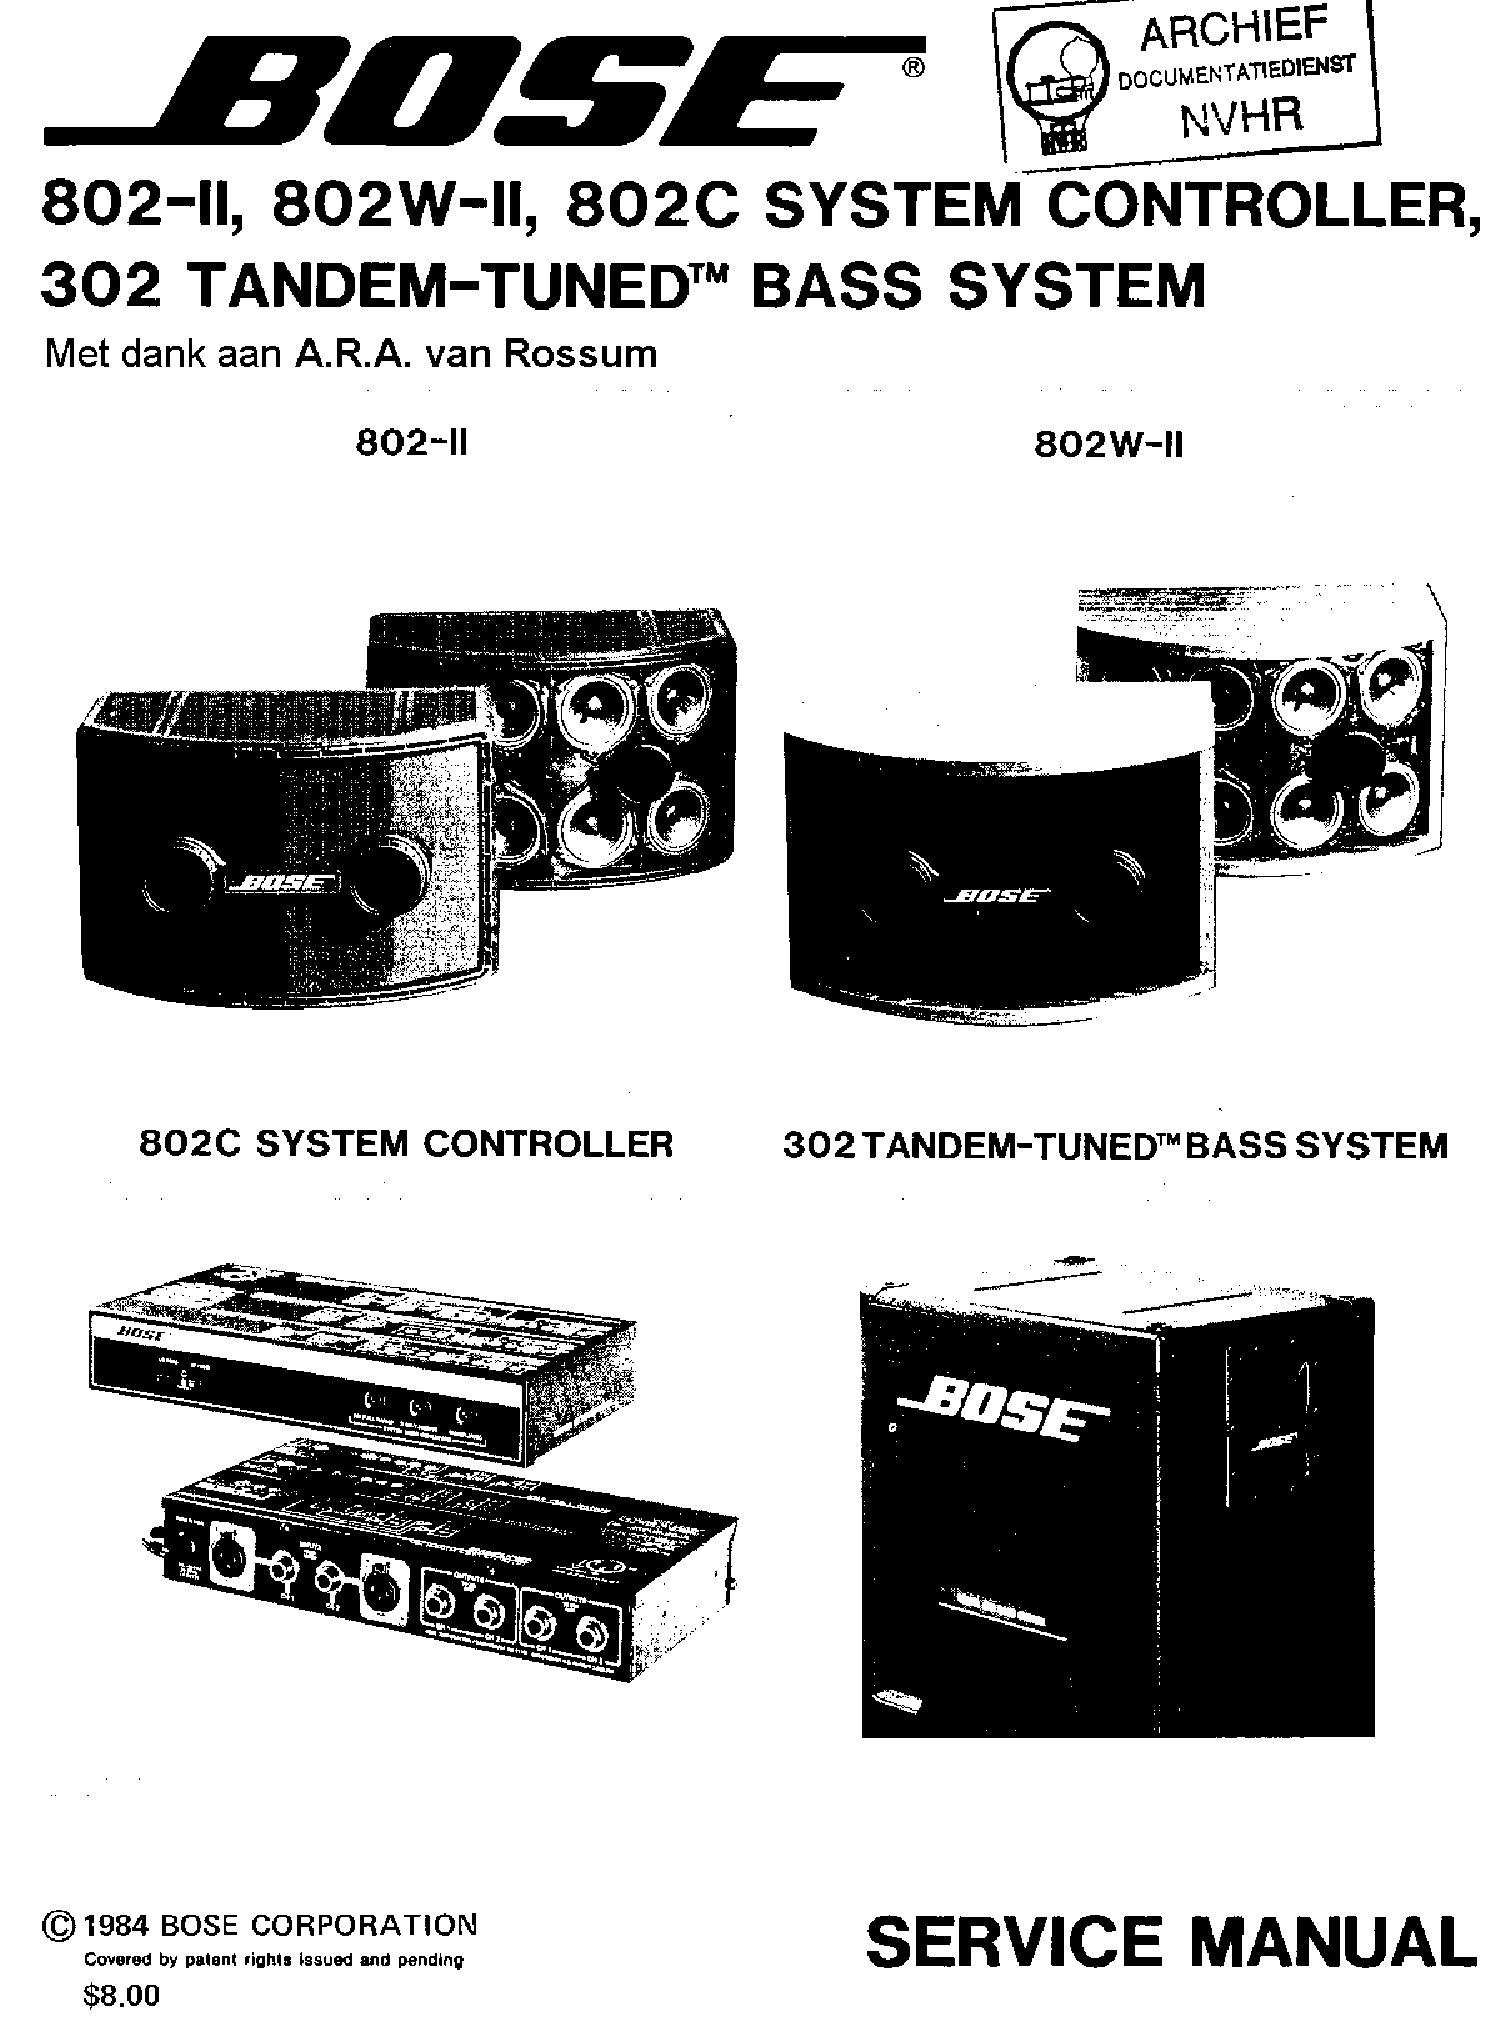 BOSE 802-II 802W-II 802C SYSTEM CONTROLLER 302 TANDEM-TUNED BASS SYSTEM  1984 SM Service Manual download, schematics, eeprom, repair info for  electronics expertsElektrotanya